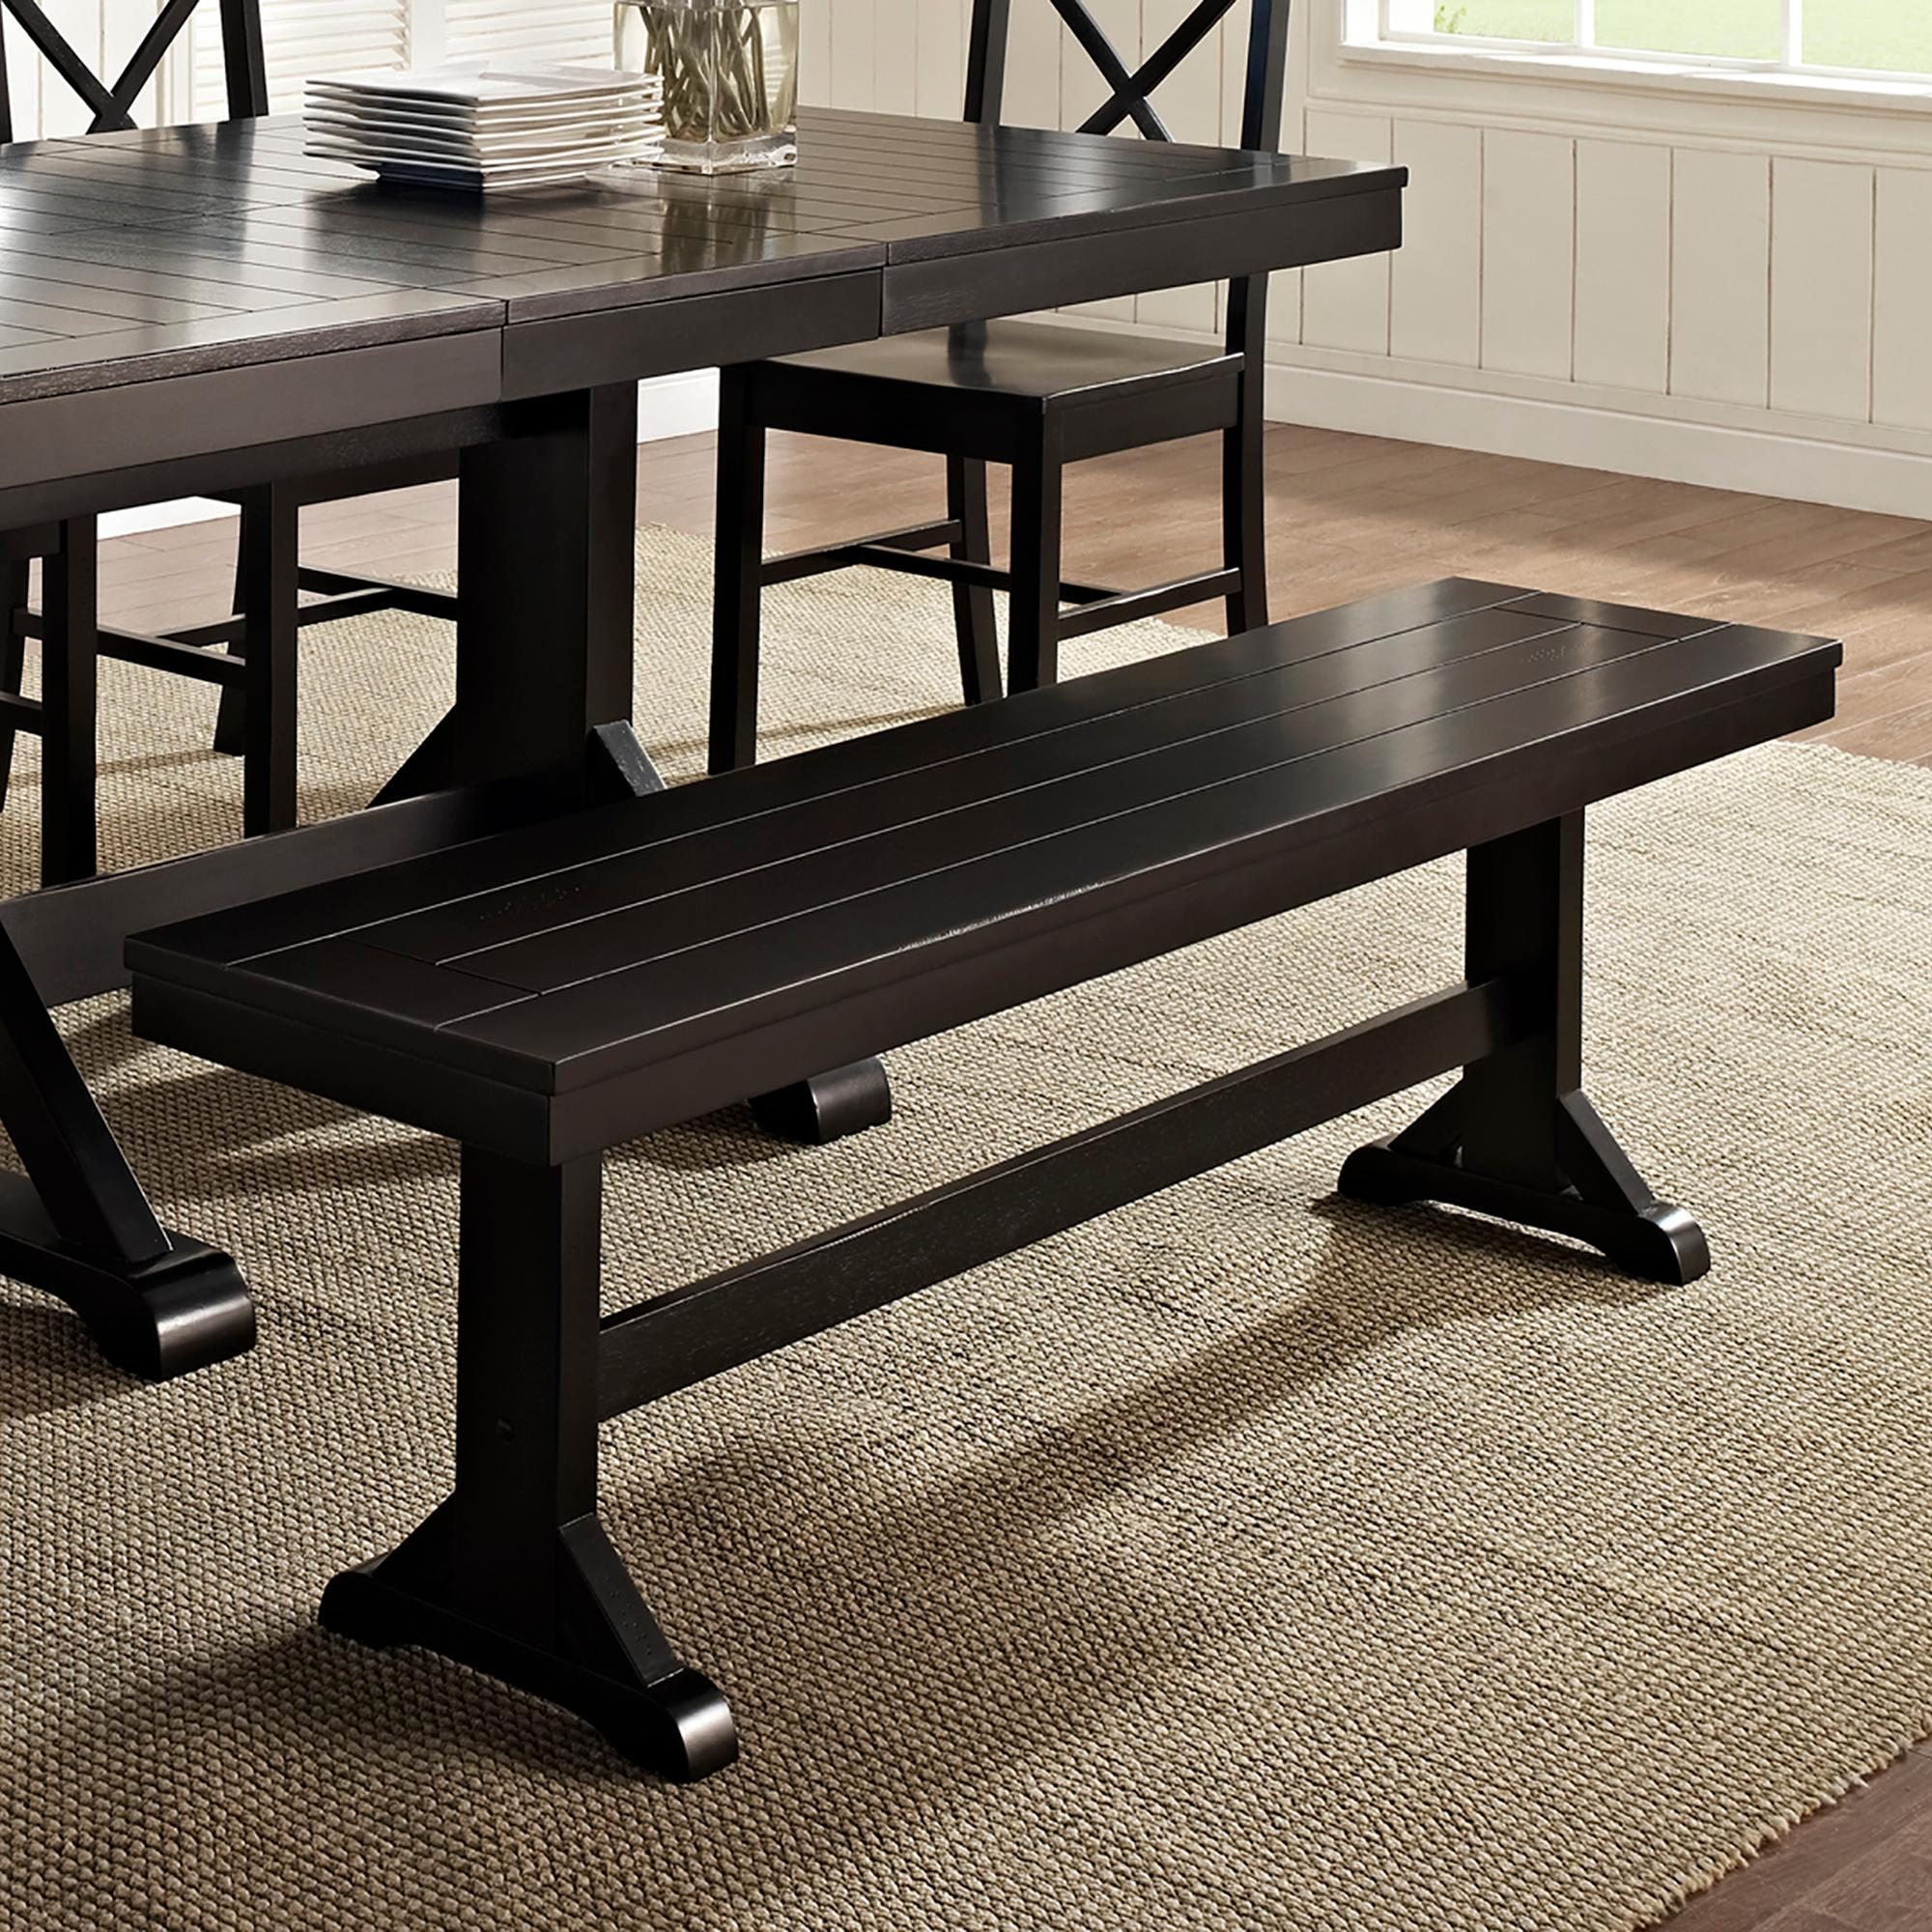 Black Bench For Dining Table